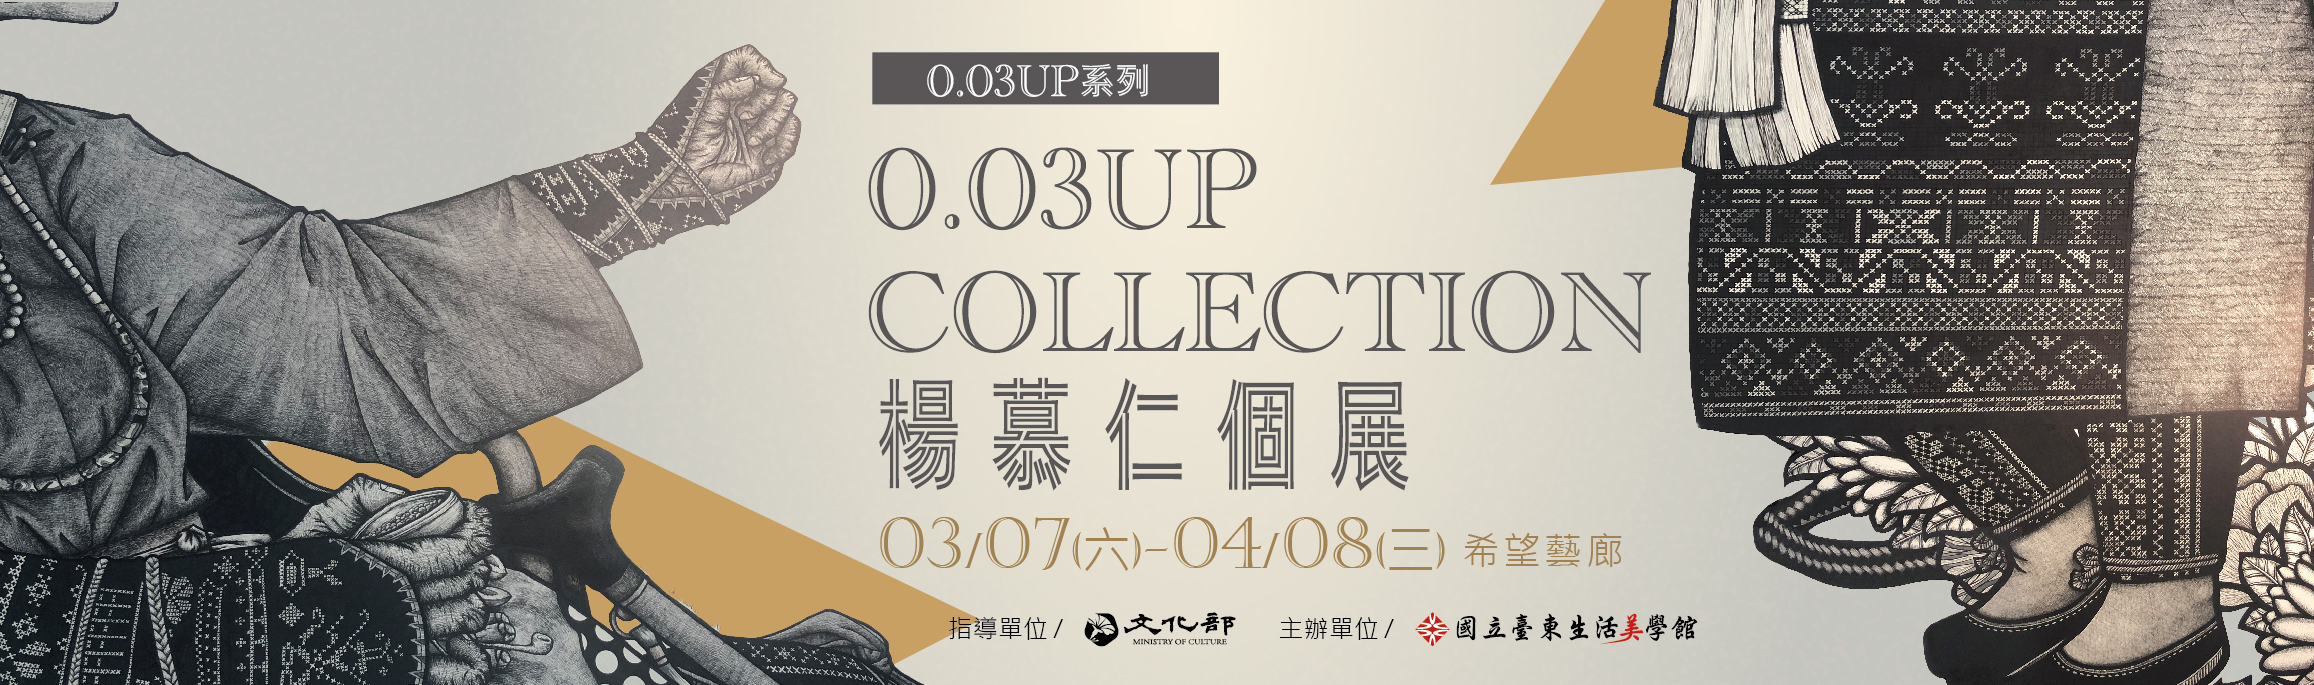 0.03UP COLLECTION / 0.03UP系列---楊慕仁個展